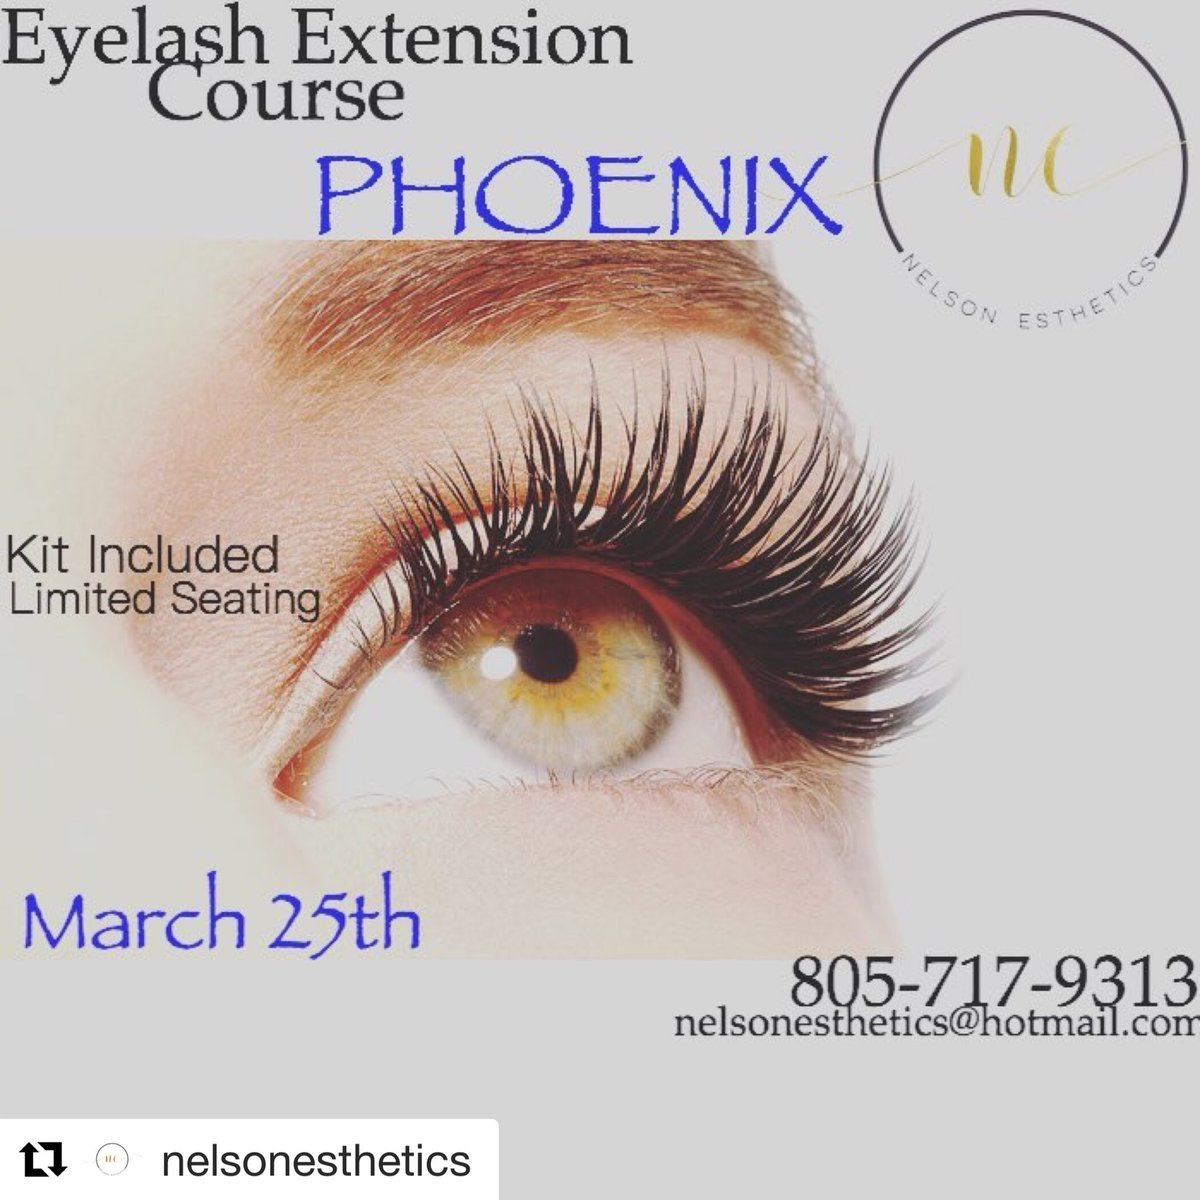 REGISTRATION CLOSING TODAY #phoenixeyelashextensions #lashextensiontraining